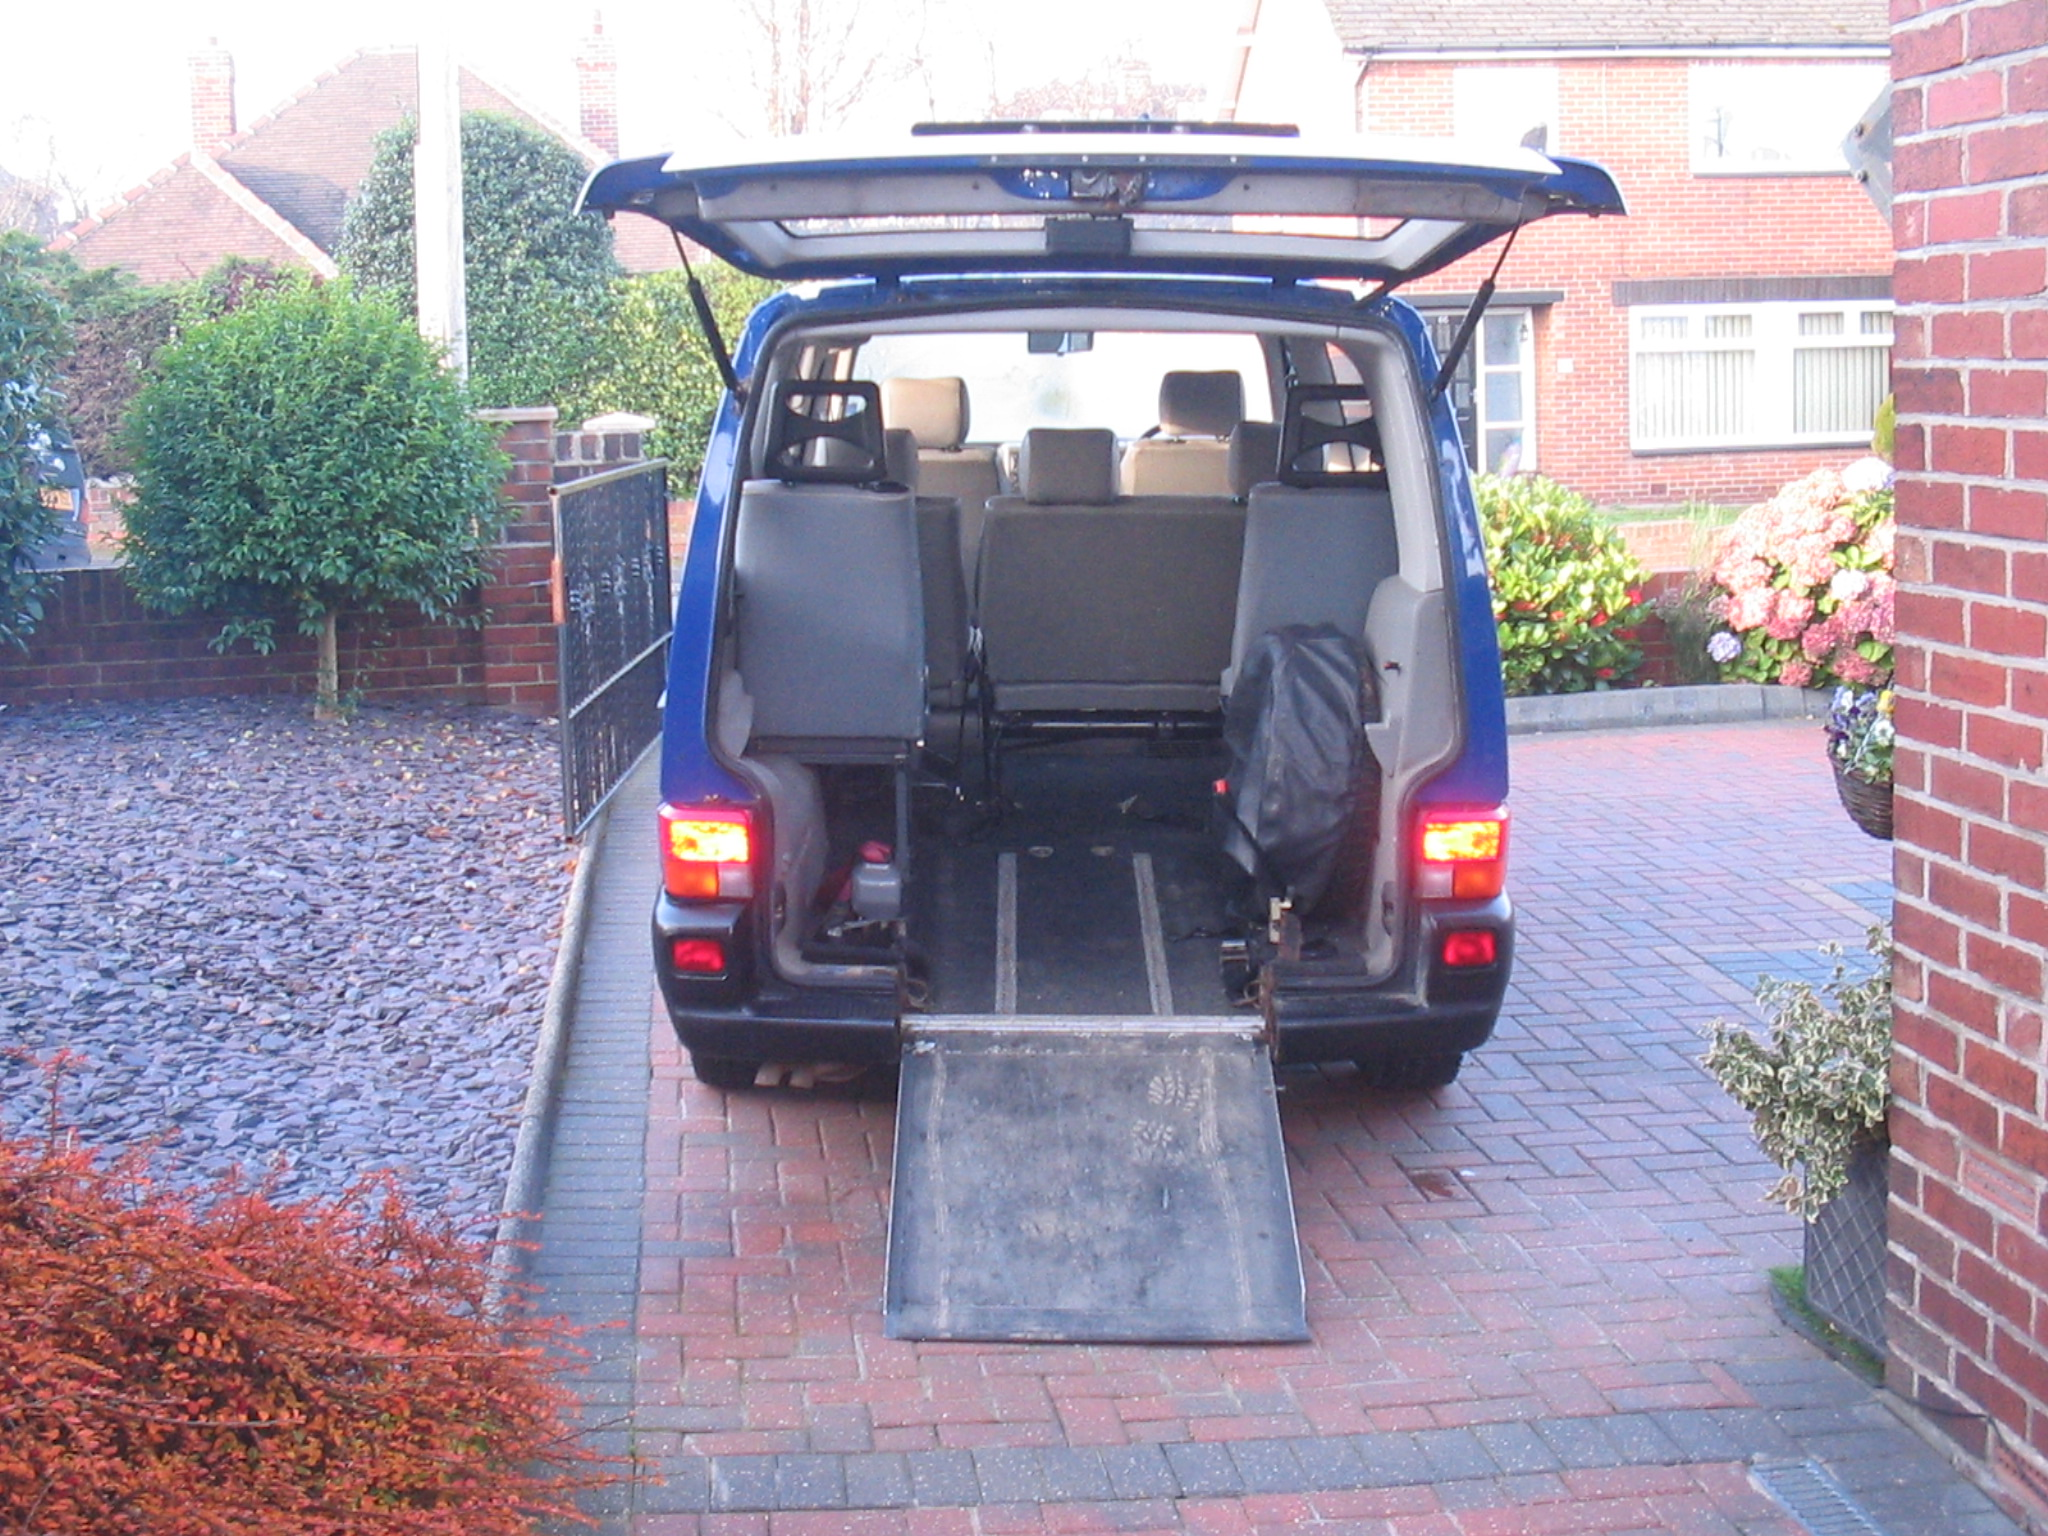 VW Caravelle 2.5 Tdi 7 seats plus wheelchair passenger